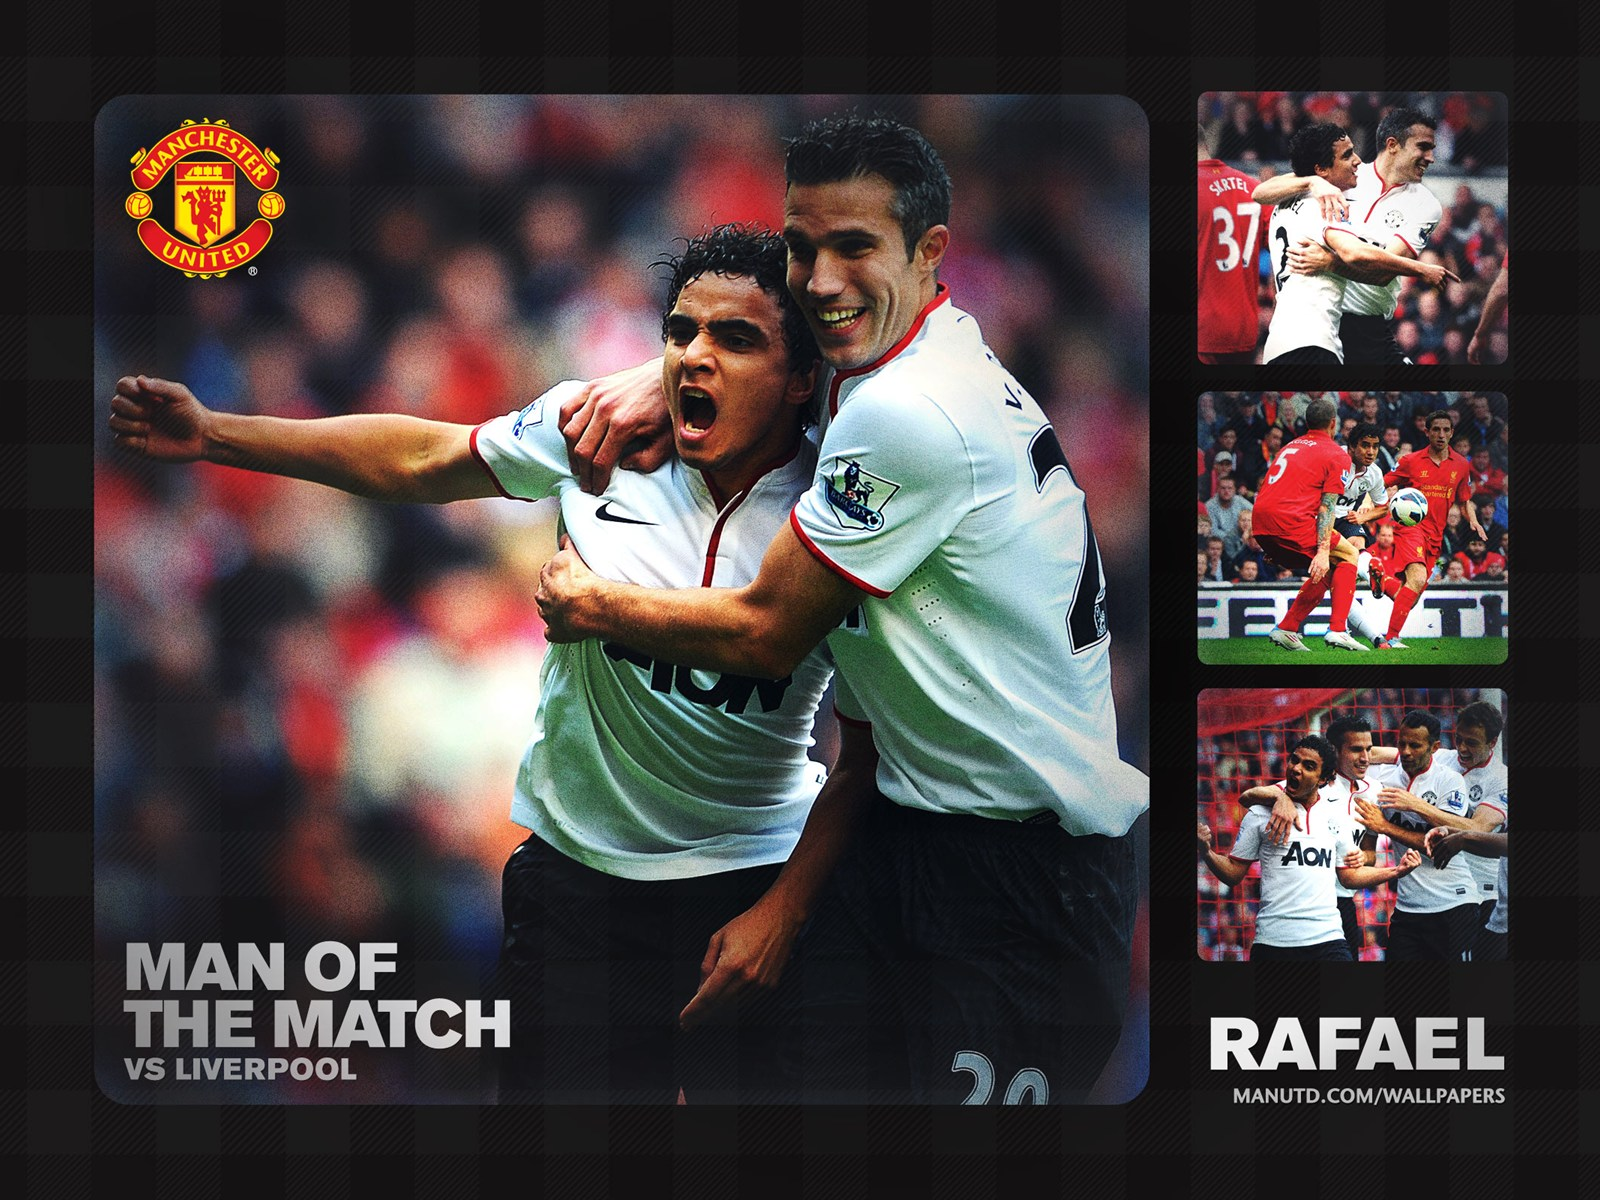 http://4.bp.blogspot.com/-H8Mj0bIw5bY/UGFCOmNpt8I/AAAAAAAAAP8/HZrclcJXckU/s1600/rafael_man_of_the_match_MU_vs_Liverpool_Wallpaper.jpeg